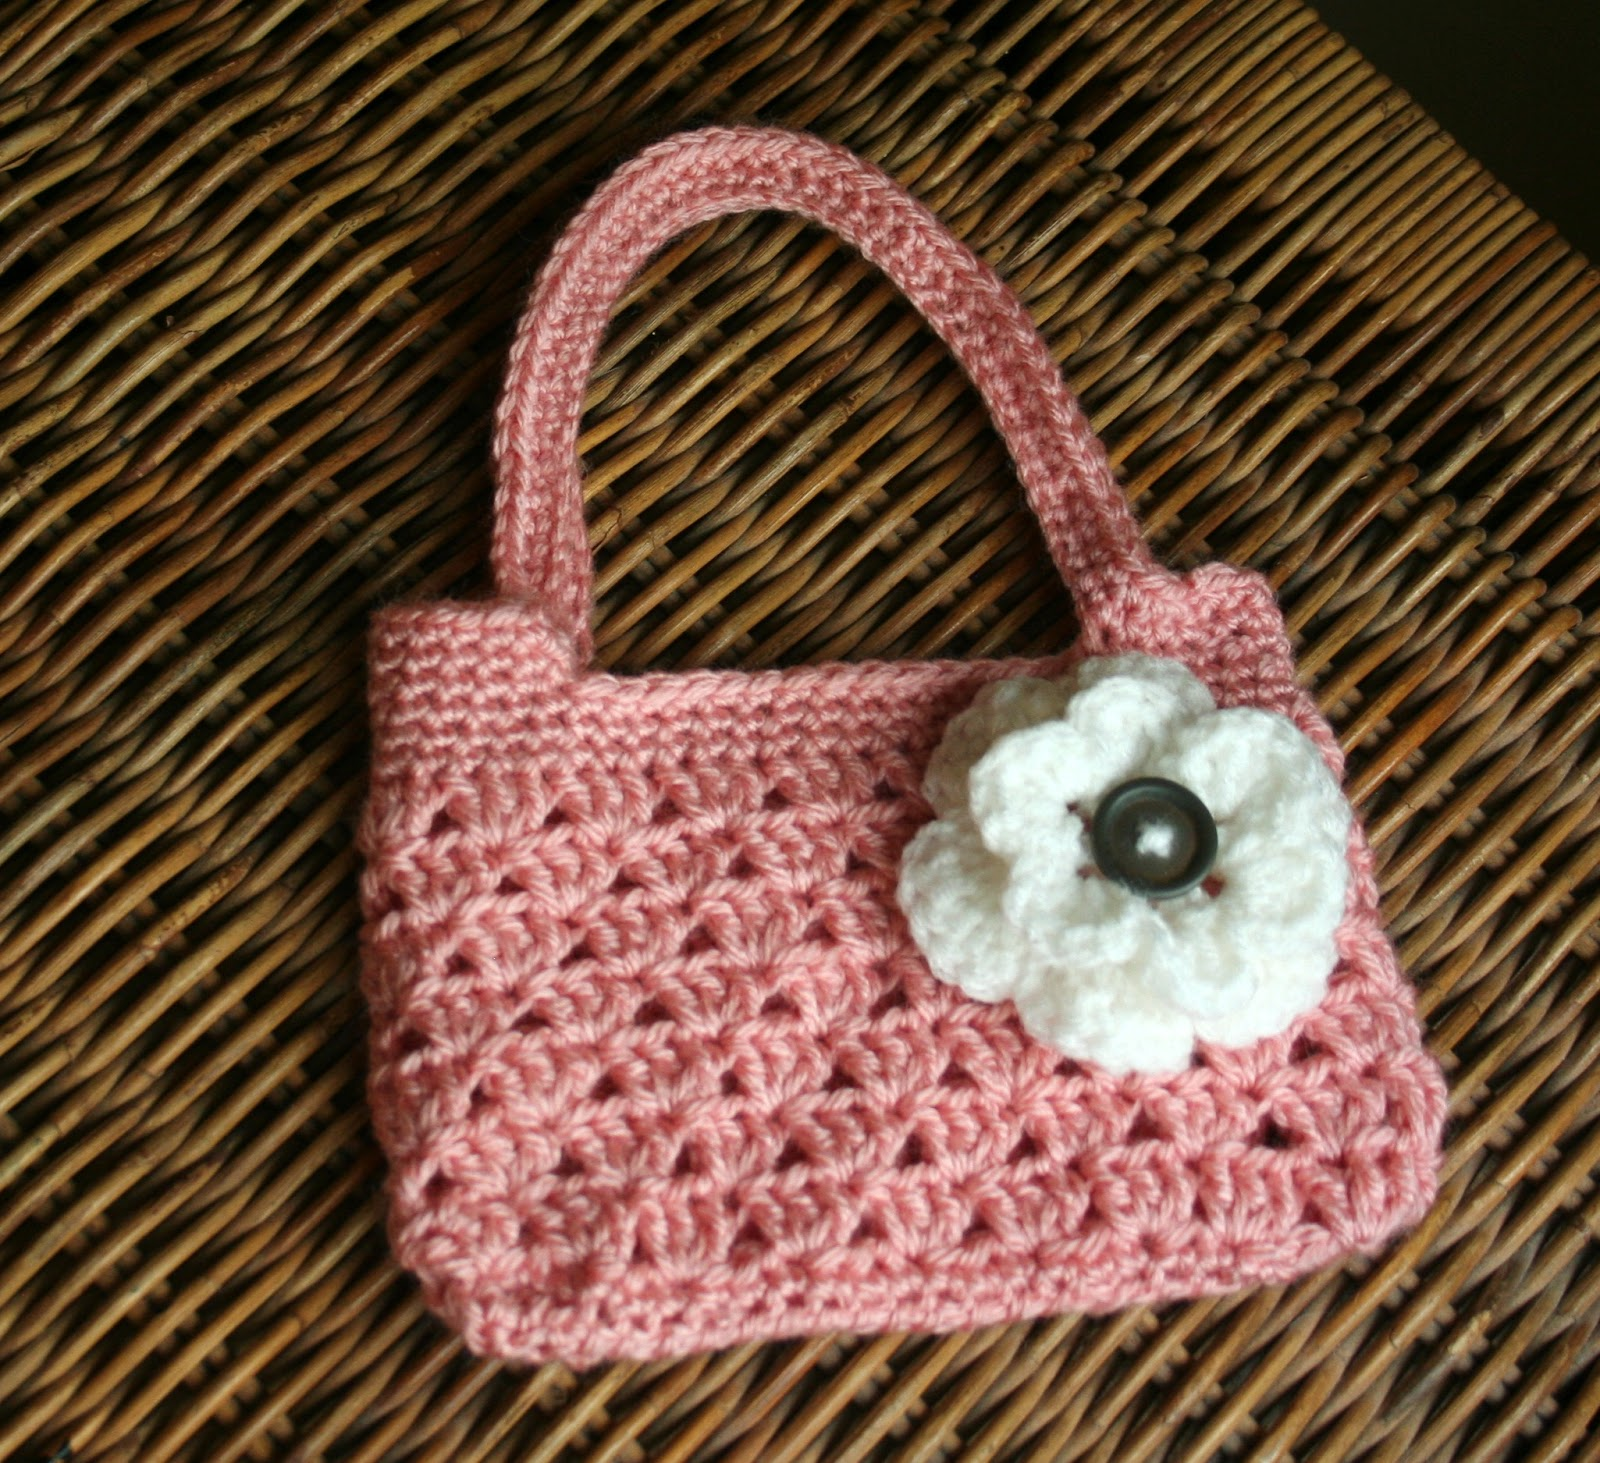 Crochet Patterns For Purses : Tampa Bay Crochet: Free Easy Crochet Purse Pattern